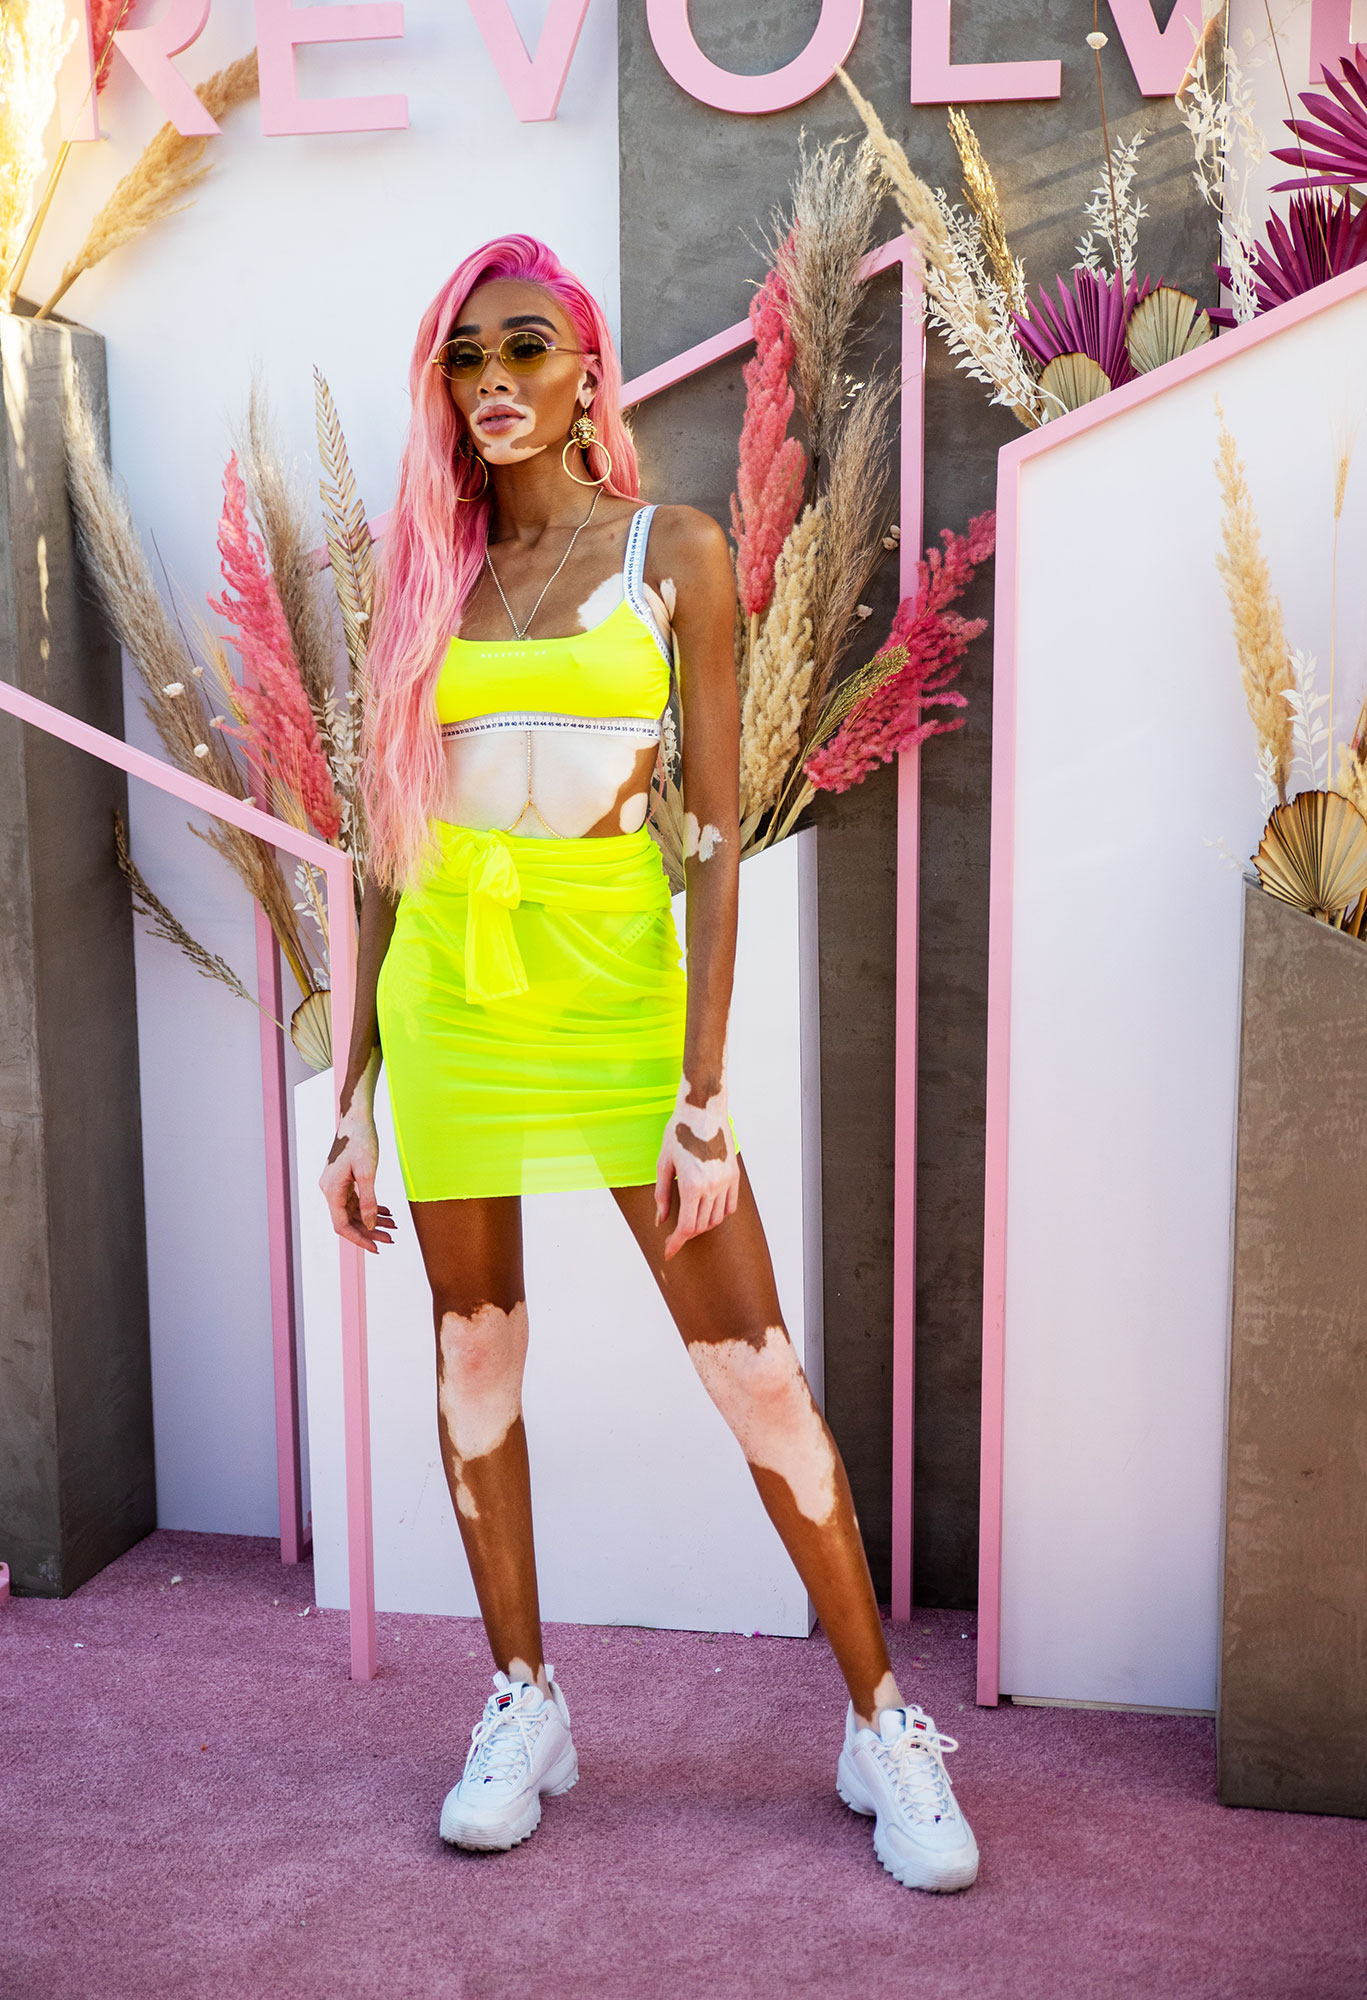 Winnie Harlow coachella fashion - The only thing cooler than the model's new pink hair? Her neon yellow skirt and bra-top combo at the Revolve Festival Saturday, April 13.